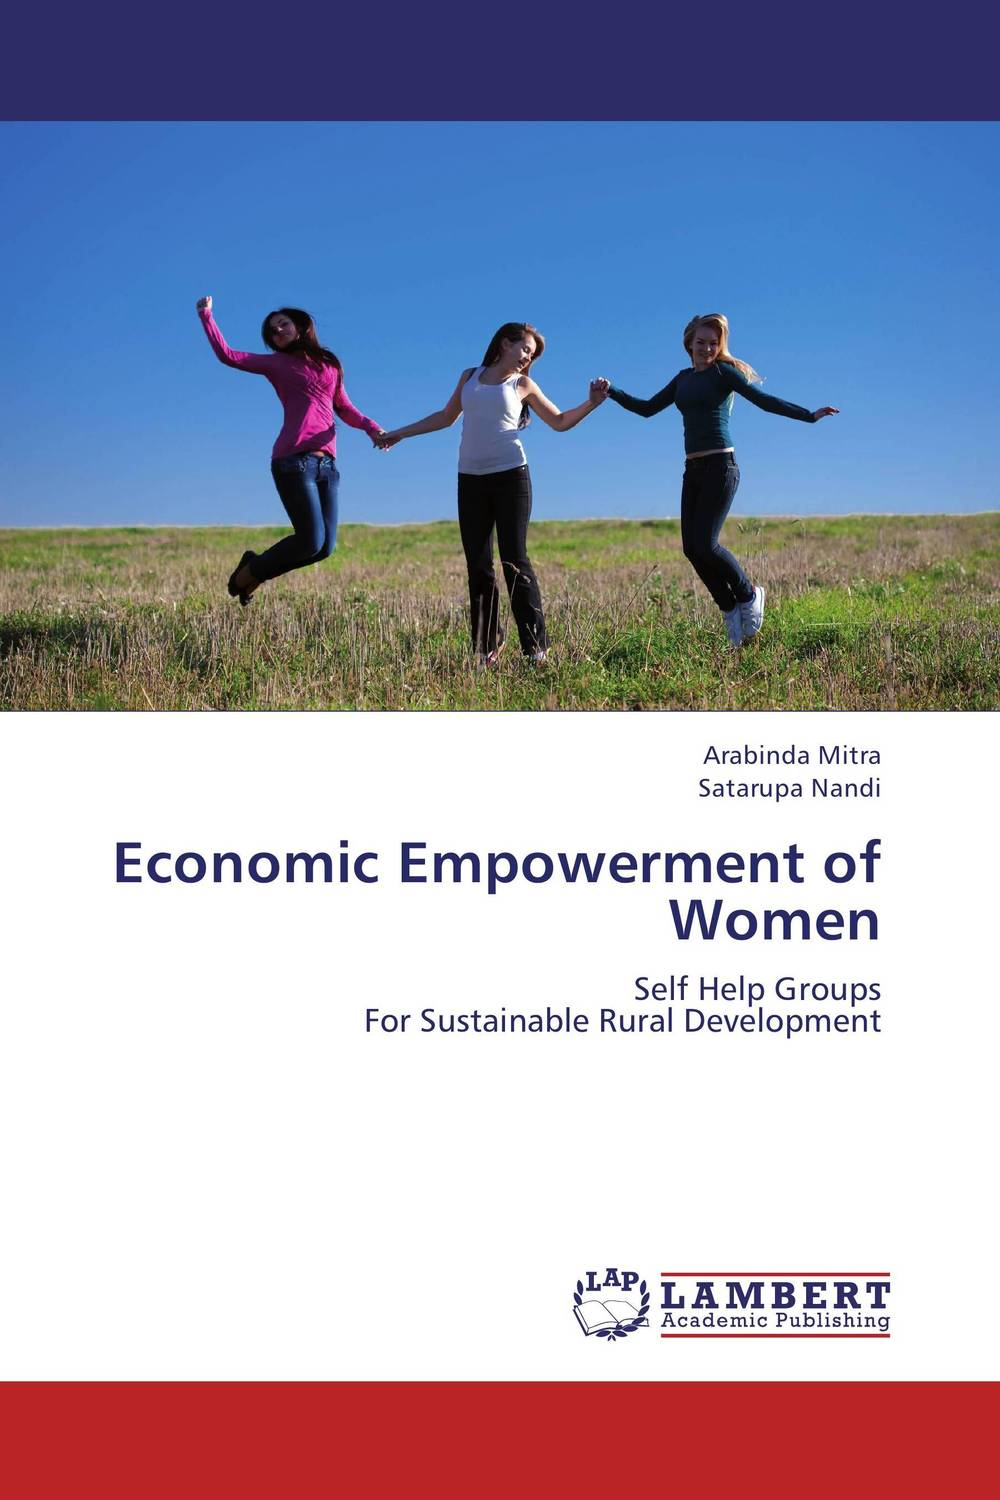 Economic Empowerment of Women economic empowerment of women and family structures